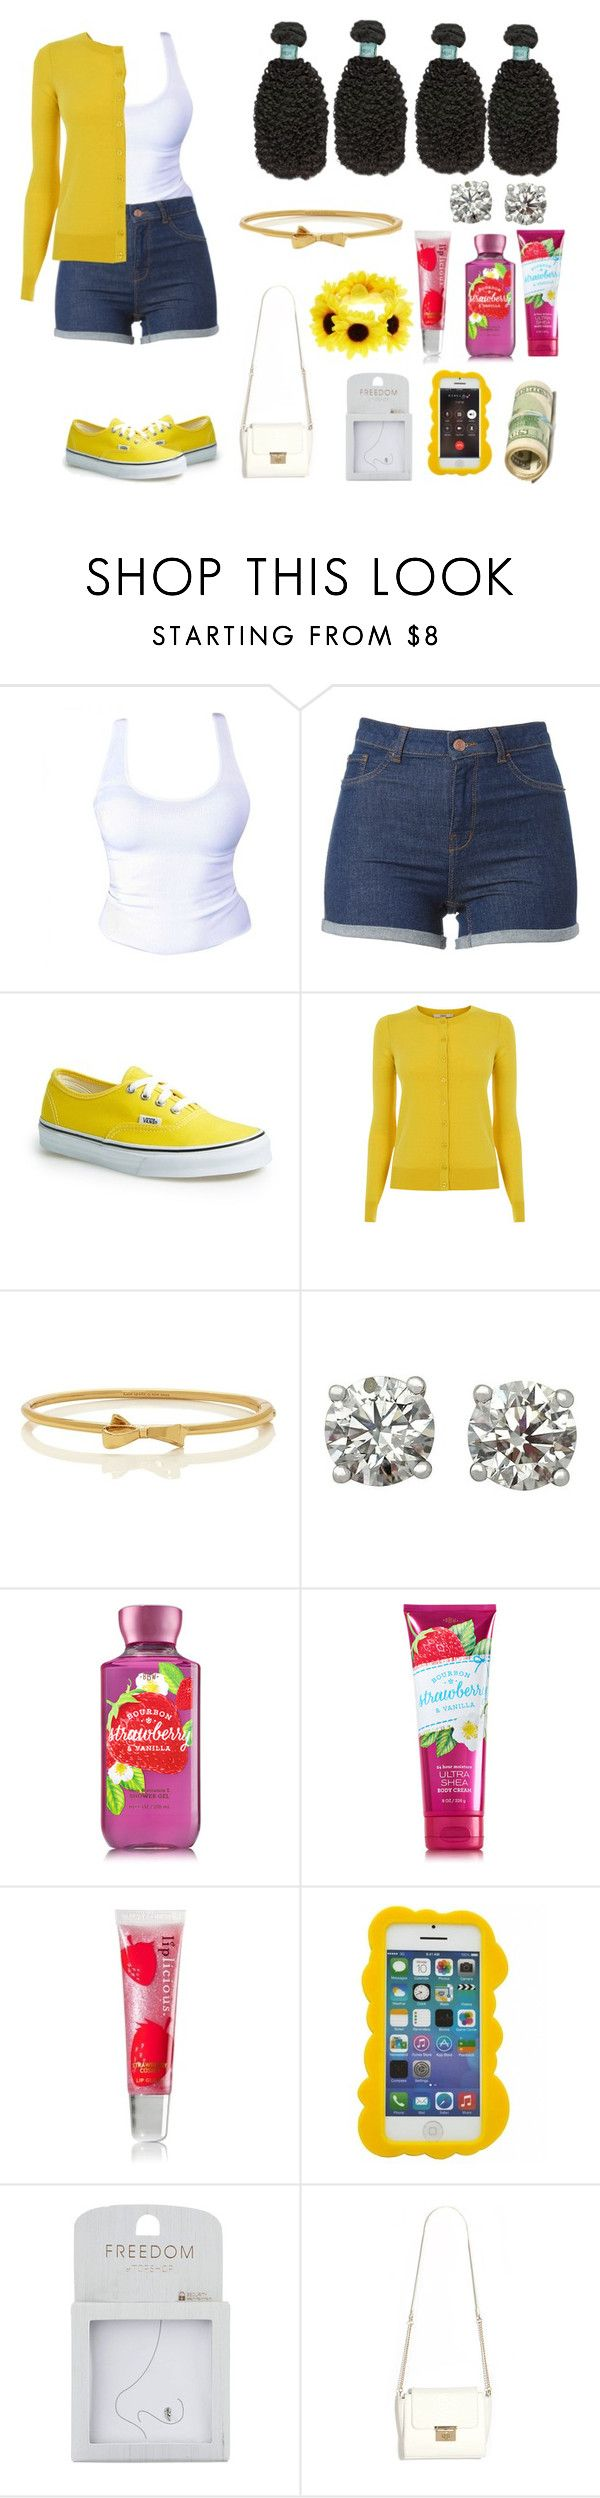 """""""summer family reunion"""" by darkroom-1 ❤ liked on Polyvore featuring Vans, Oasis, Kate Spade, Disney, xO Design, Topshop and Accessorize"""